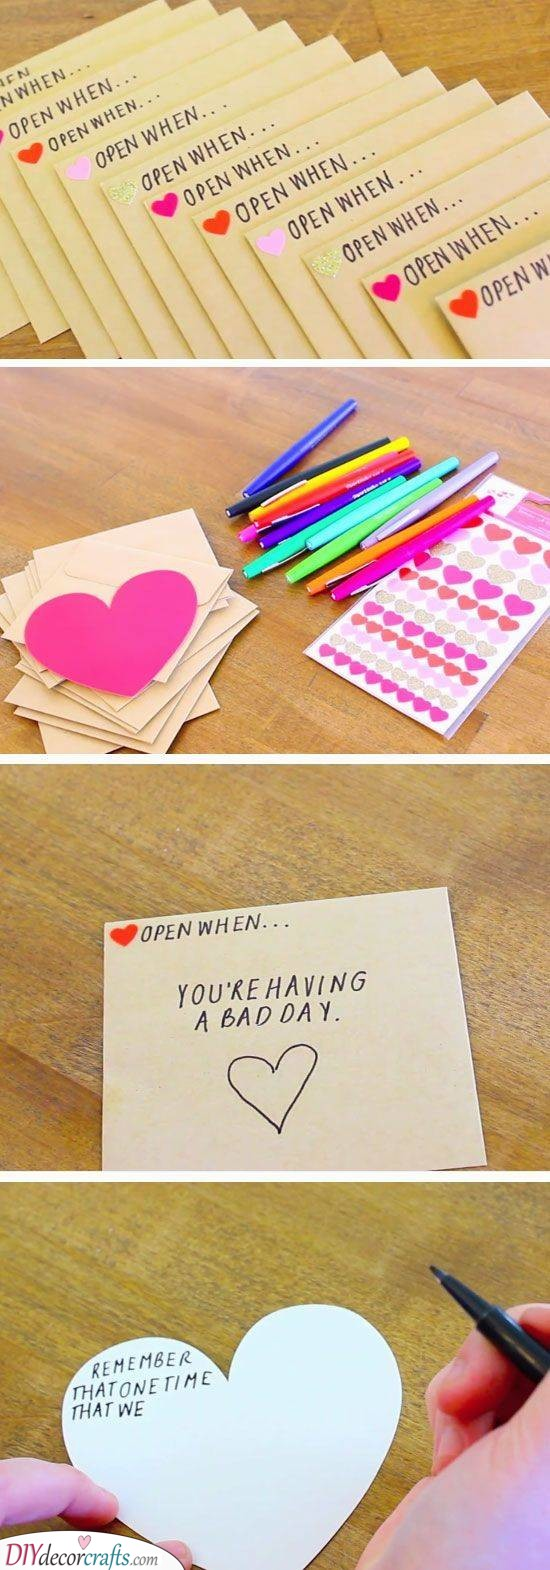 Cute Cards - For Bad Days